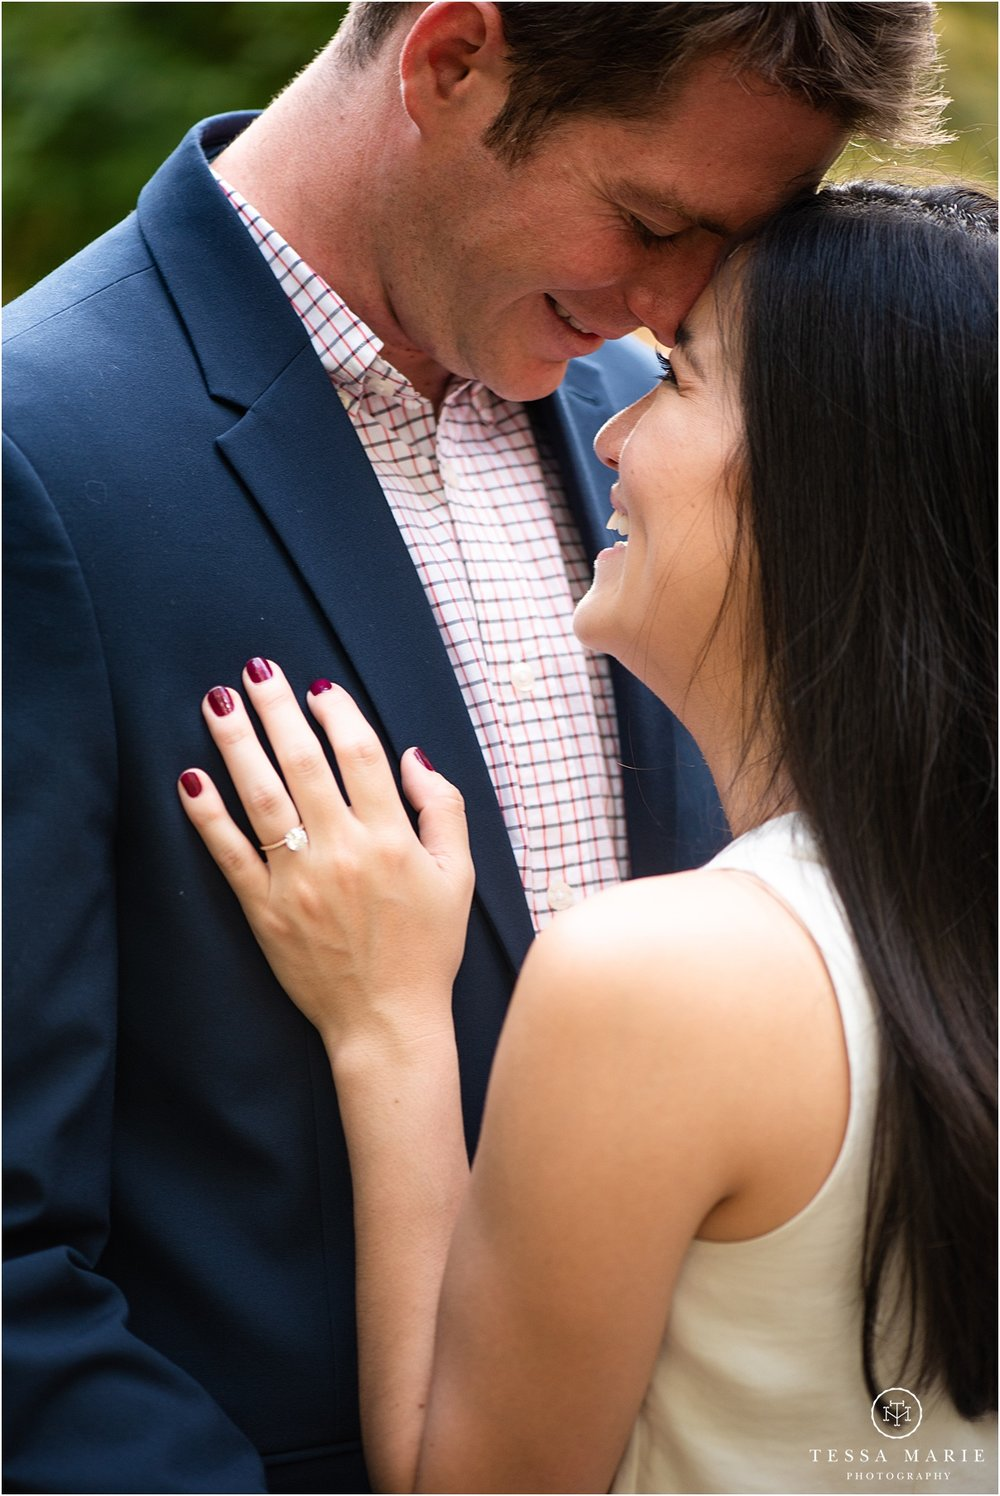 Tessa_marie_photography_wedding_photographer_engagement_pictures_piedmont_park_0052.jpg